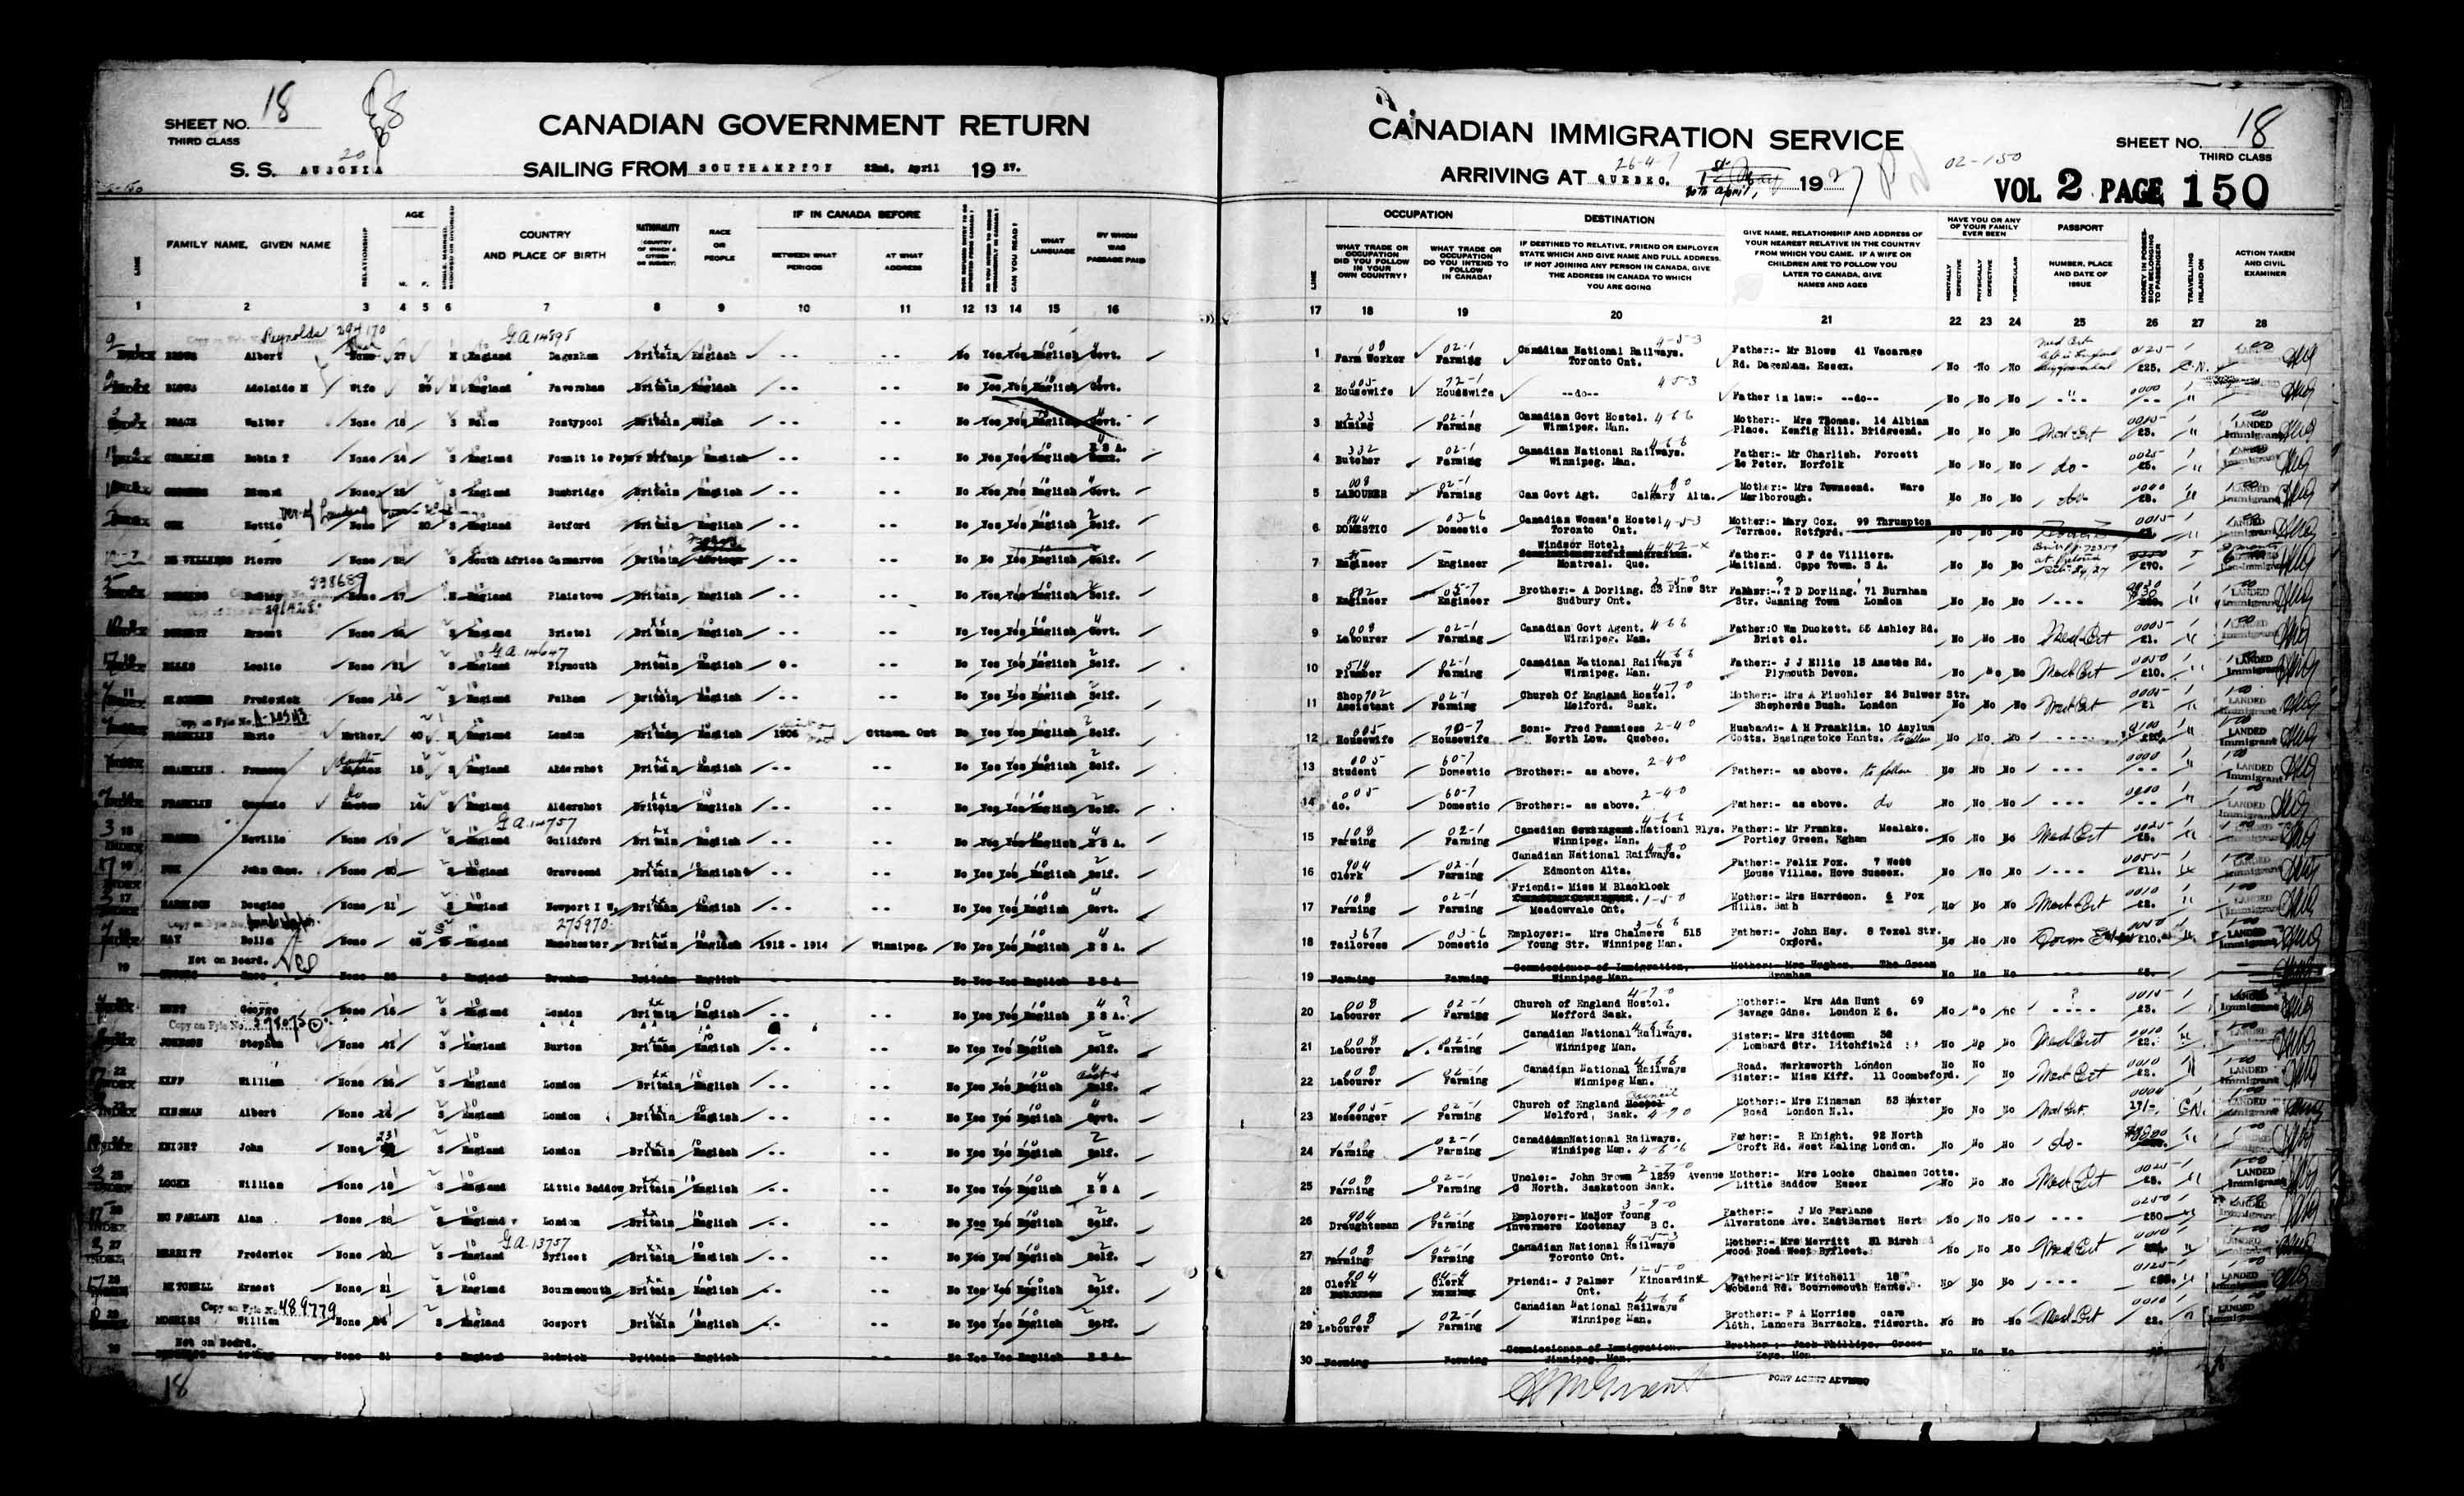 Title: Passenger Lists: Quebec City (1925-1935) - Mikan Number: 134839 - Microform: t-14731